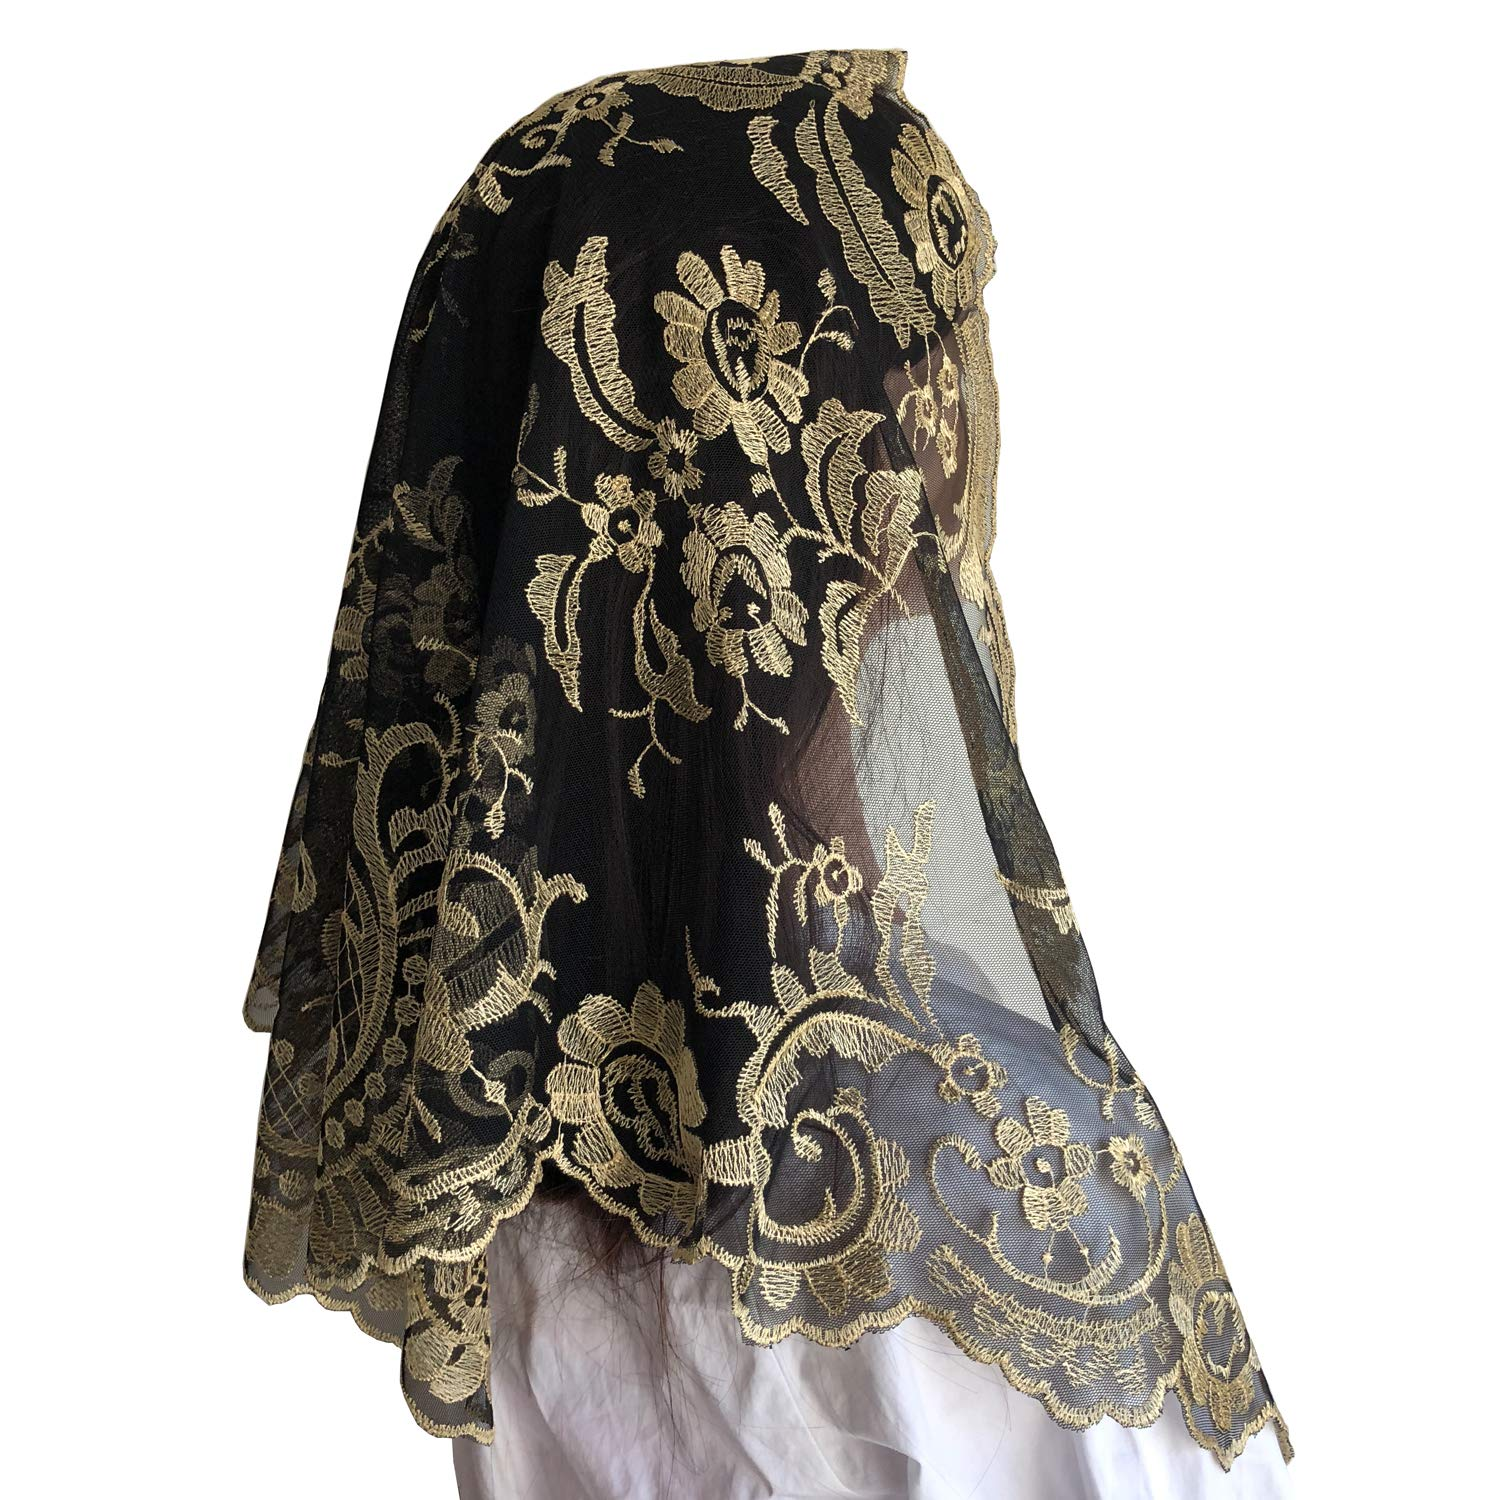 Spanish Mantilla Embroidery Lace Veils Catholic Church Mantillas Chapel Scarf Lace Mass (black and gold), 120cm60cm